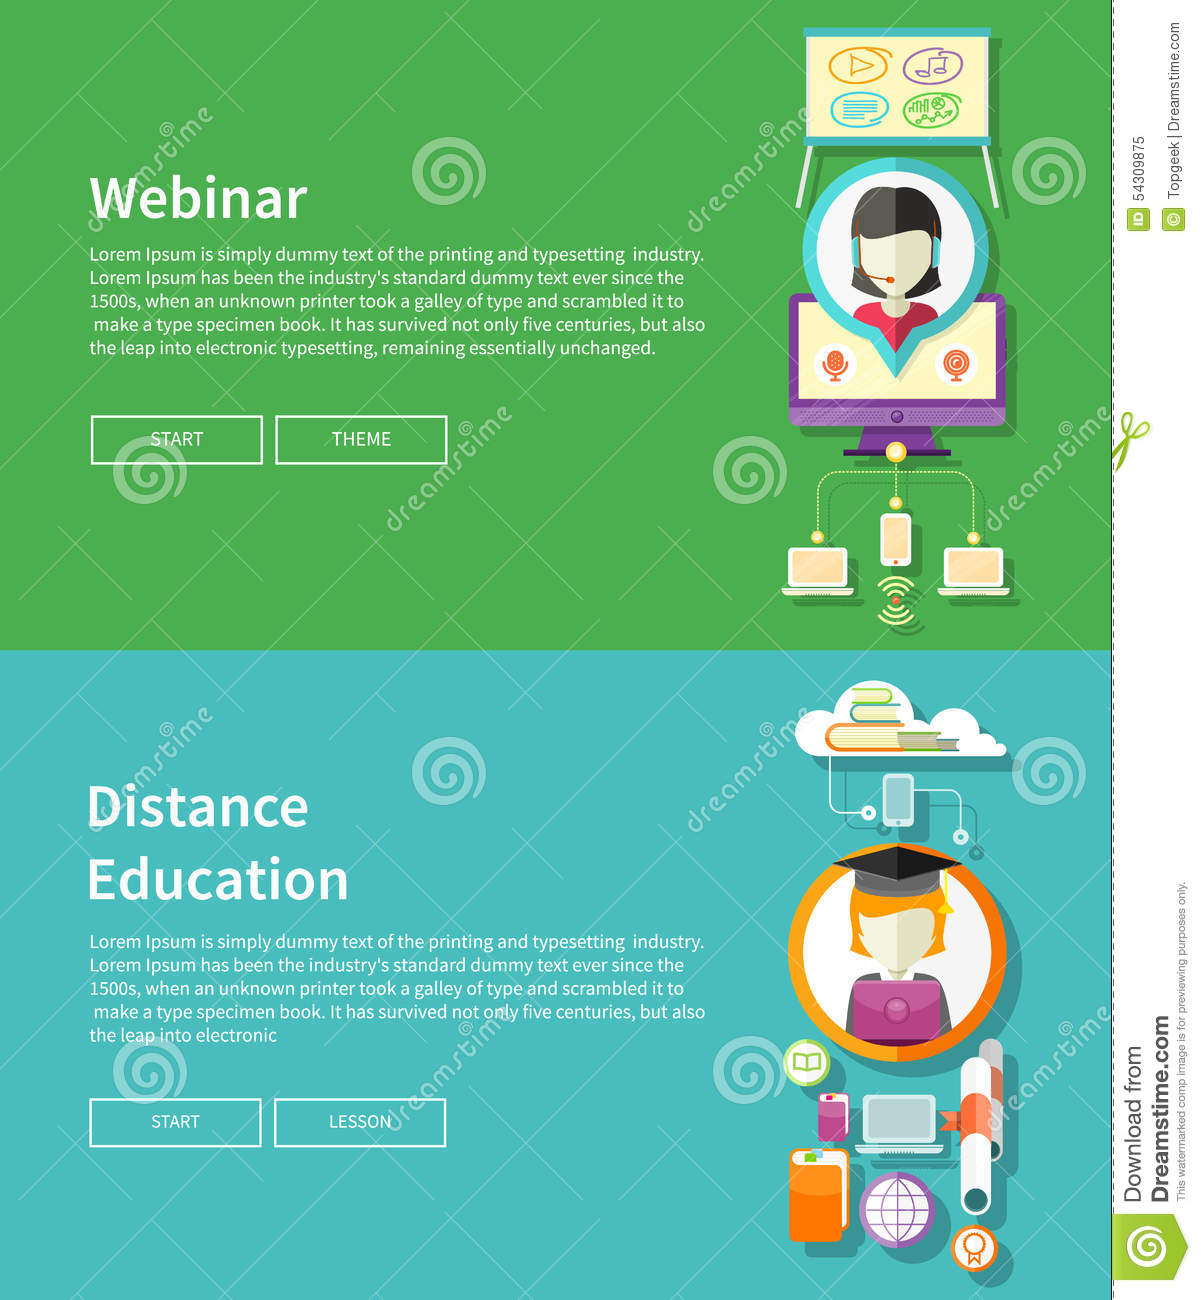 Webinar And Distance Education Stock Vector - Image: 54309875